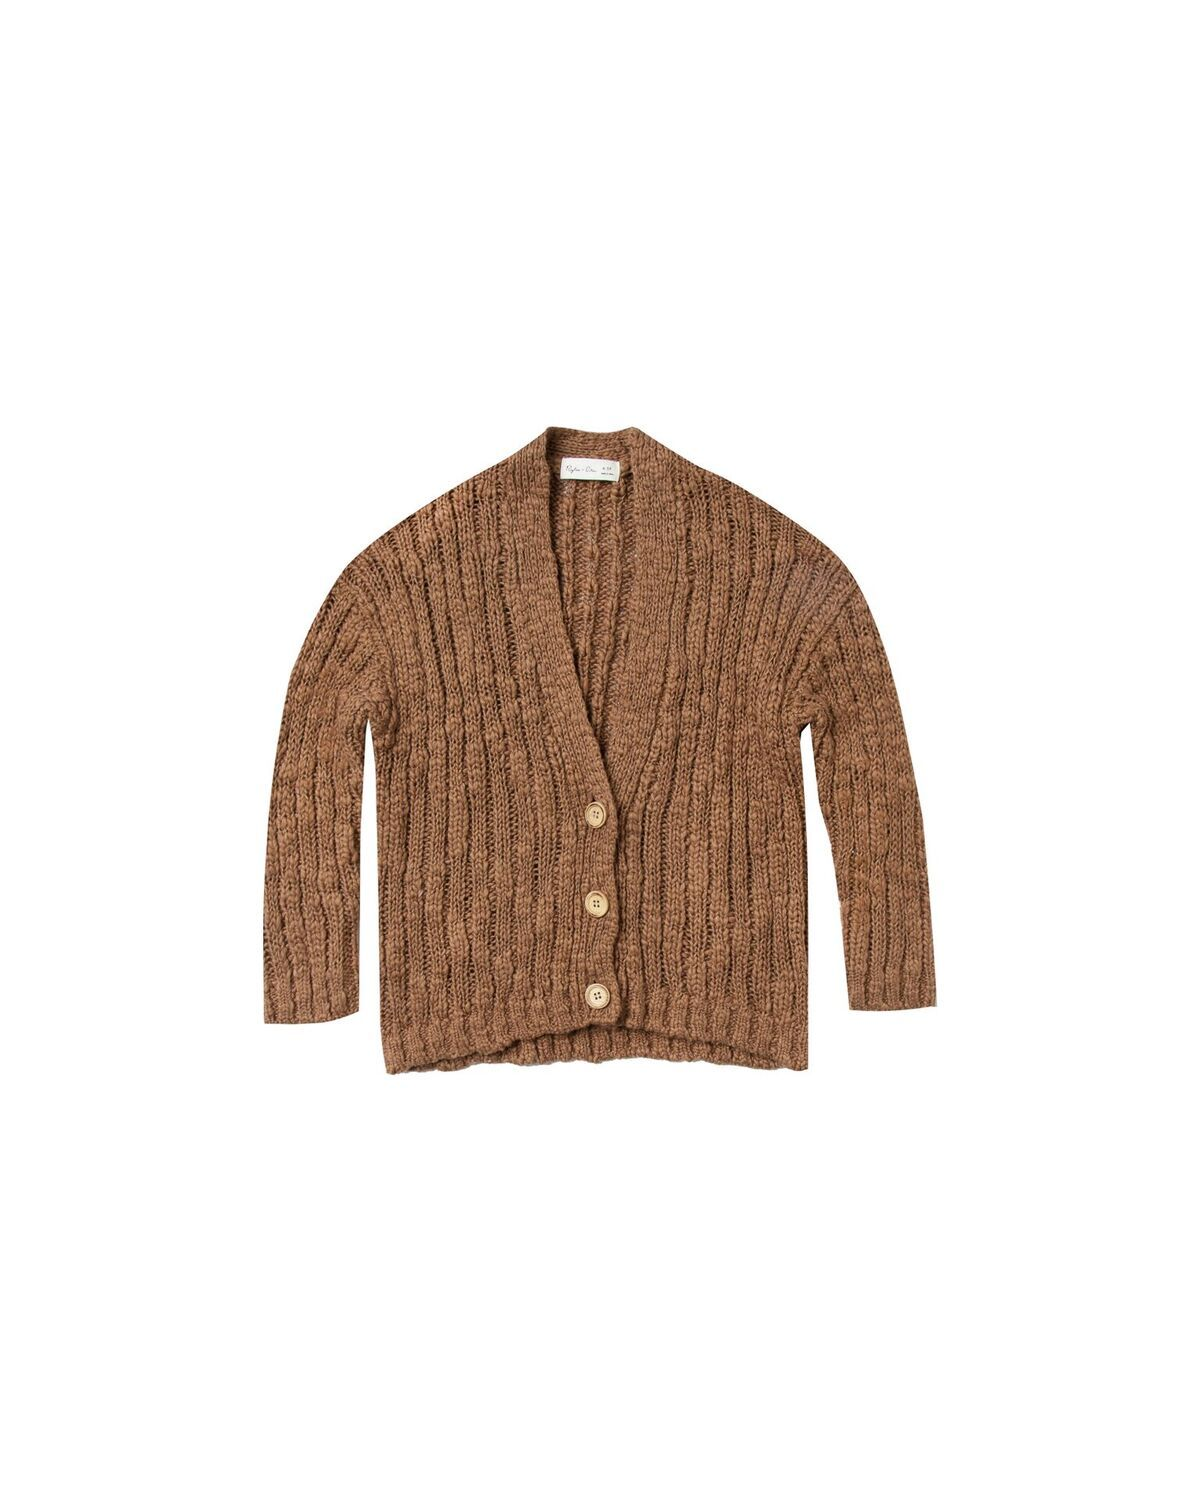 Birdy Cardigan in Caramel by Rylee & Cru